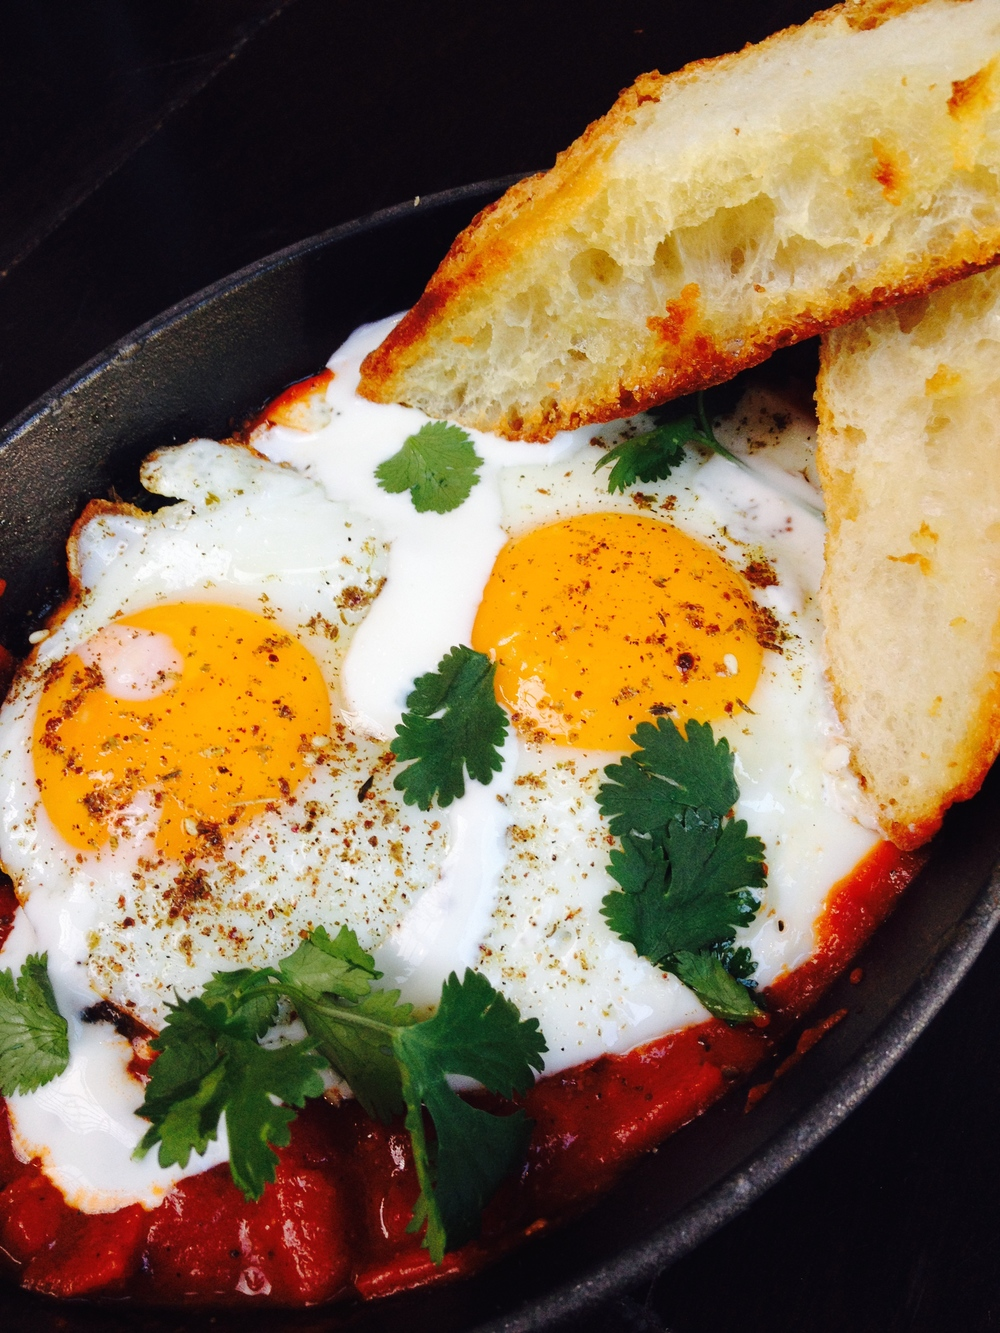 Shakshouka, a Middle Eastern breakfast dish of eggs in a sauce of tomatoes, onions, and cumin, served with grilled bread.